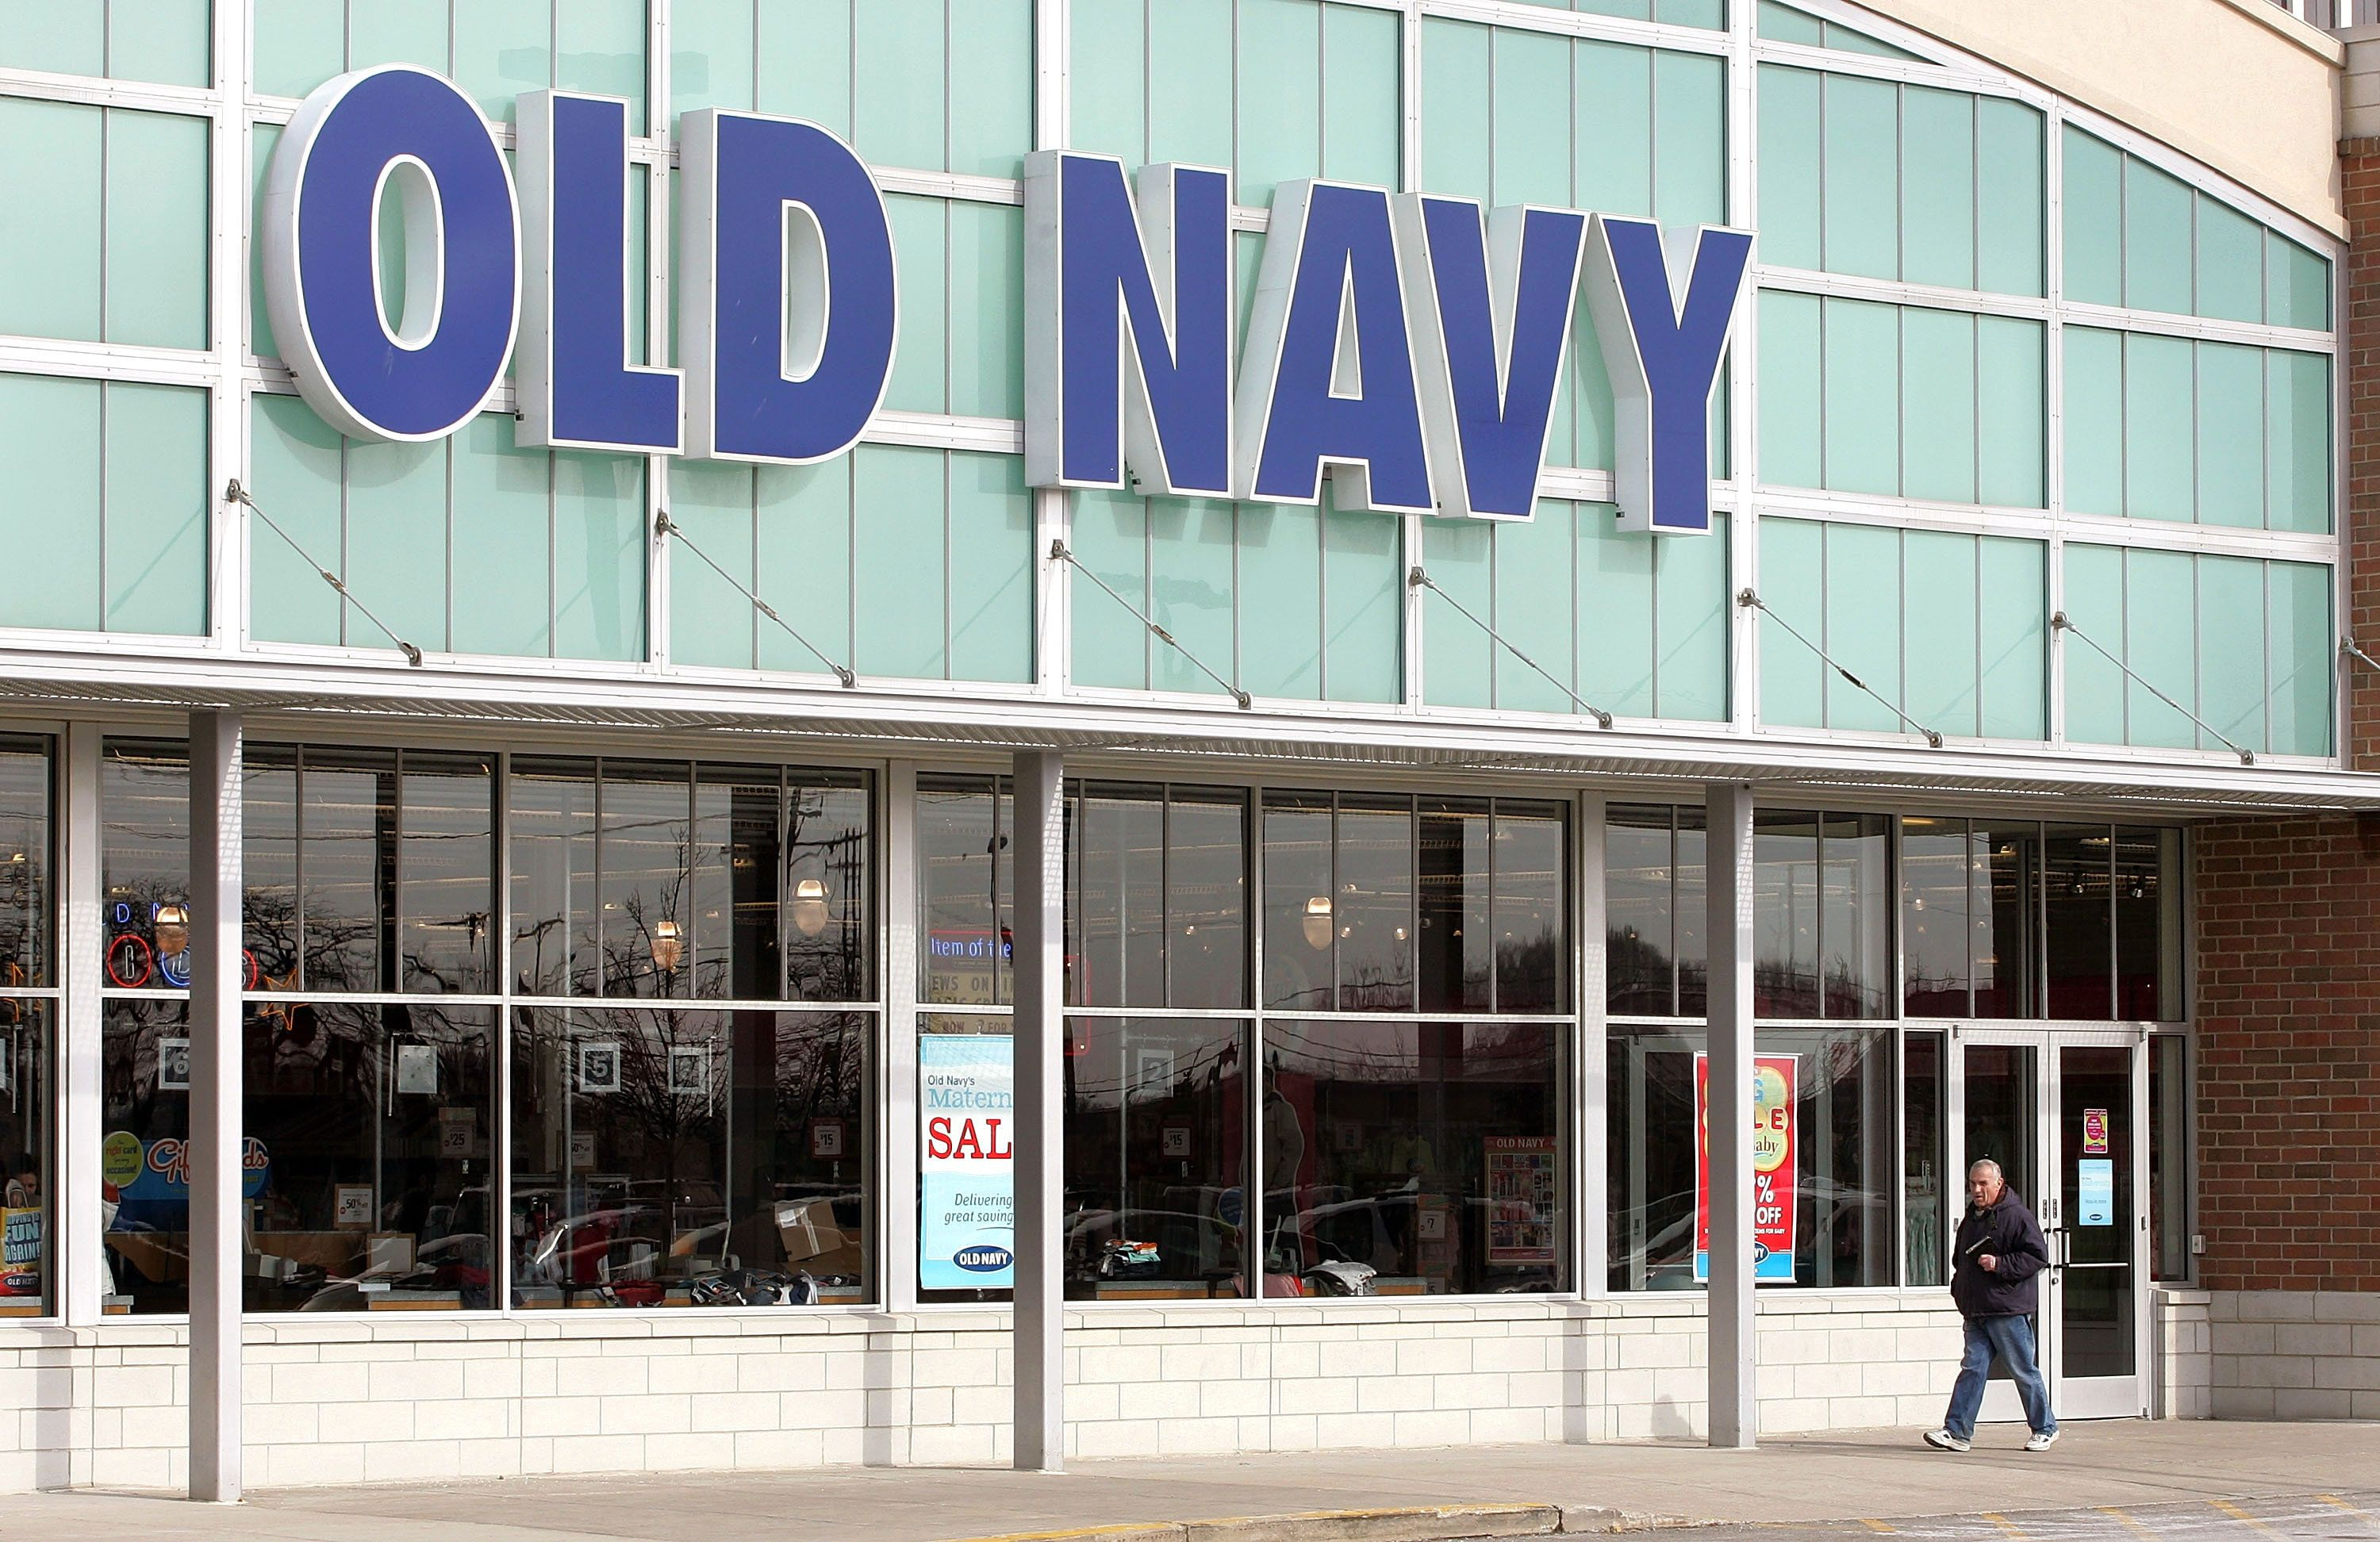 SKOKIE, IL - FEBRUARY 11:  A man walks past an Old Navy store February 11, 2005 in Skokie, Illinois. Old Navy has announced that it is expanding its new Women's Plus line to more locations including this select suburban Chicago store. The clothing company says their new spring product line offers the plus-sized woman great-fitting clothing and affordable fashion. Old Navy operates more than 850 stores in the United States and Canada.  (Photo by Tim Boyle/Getty Images)